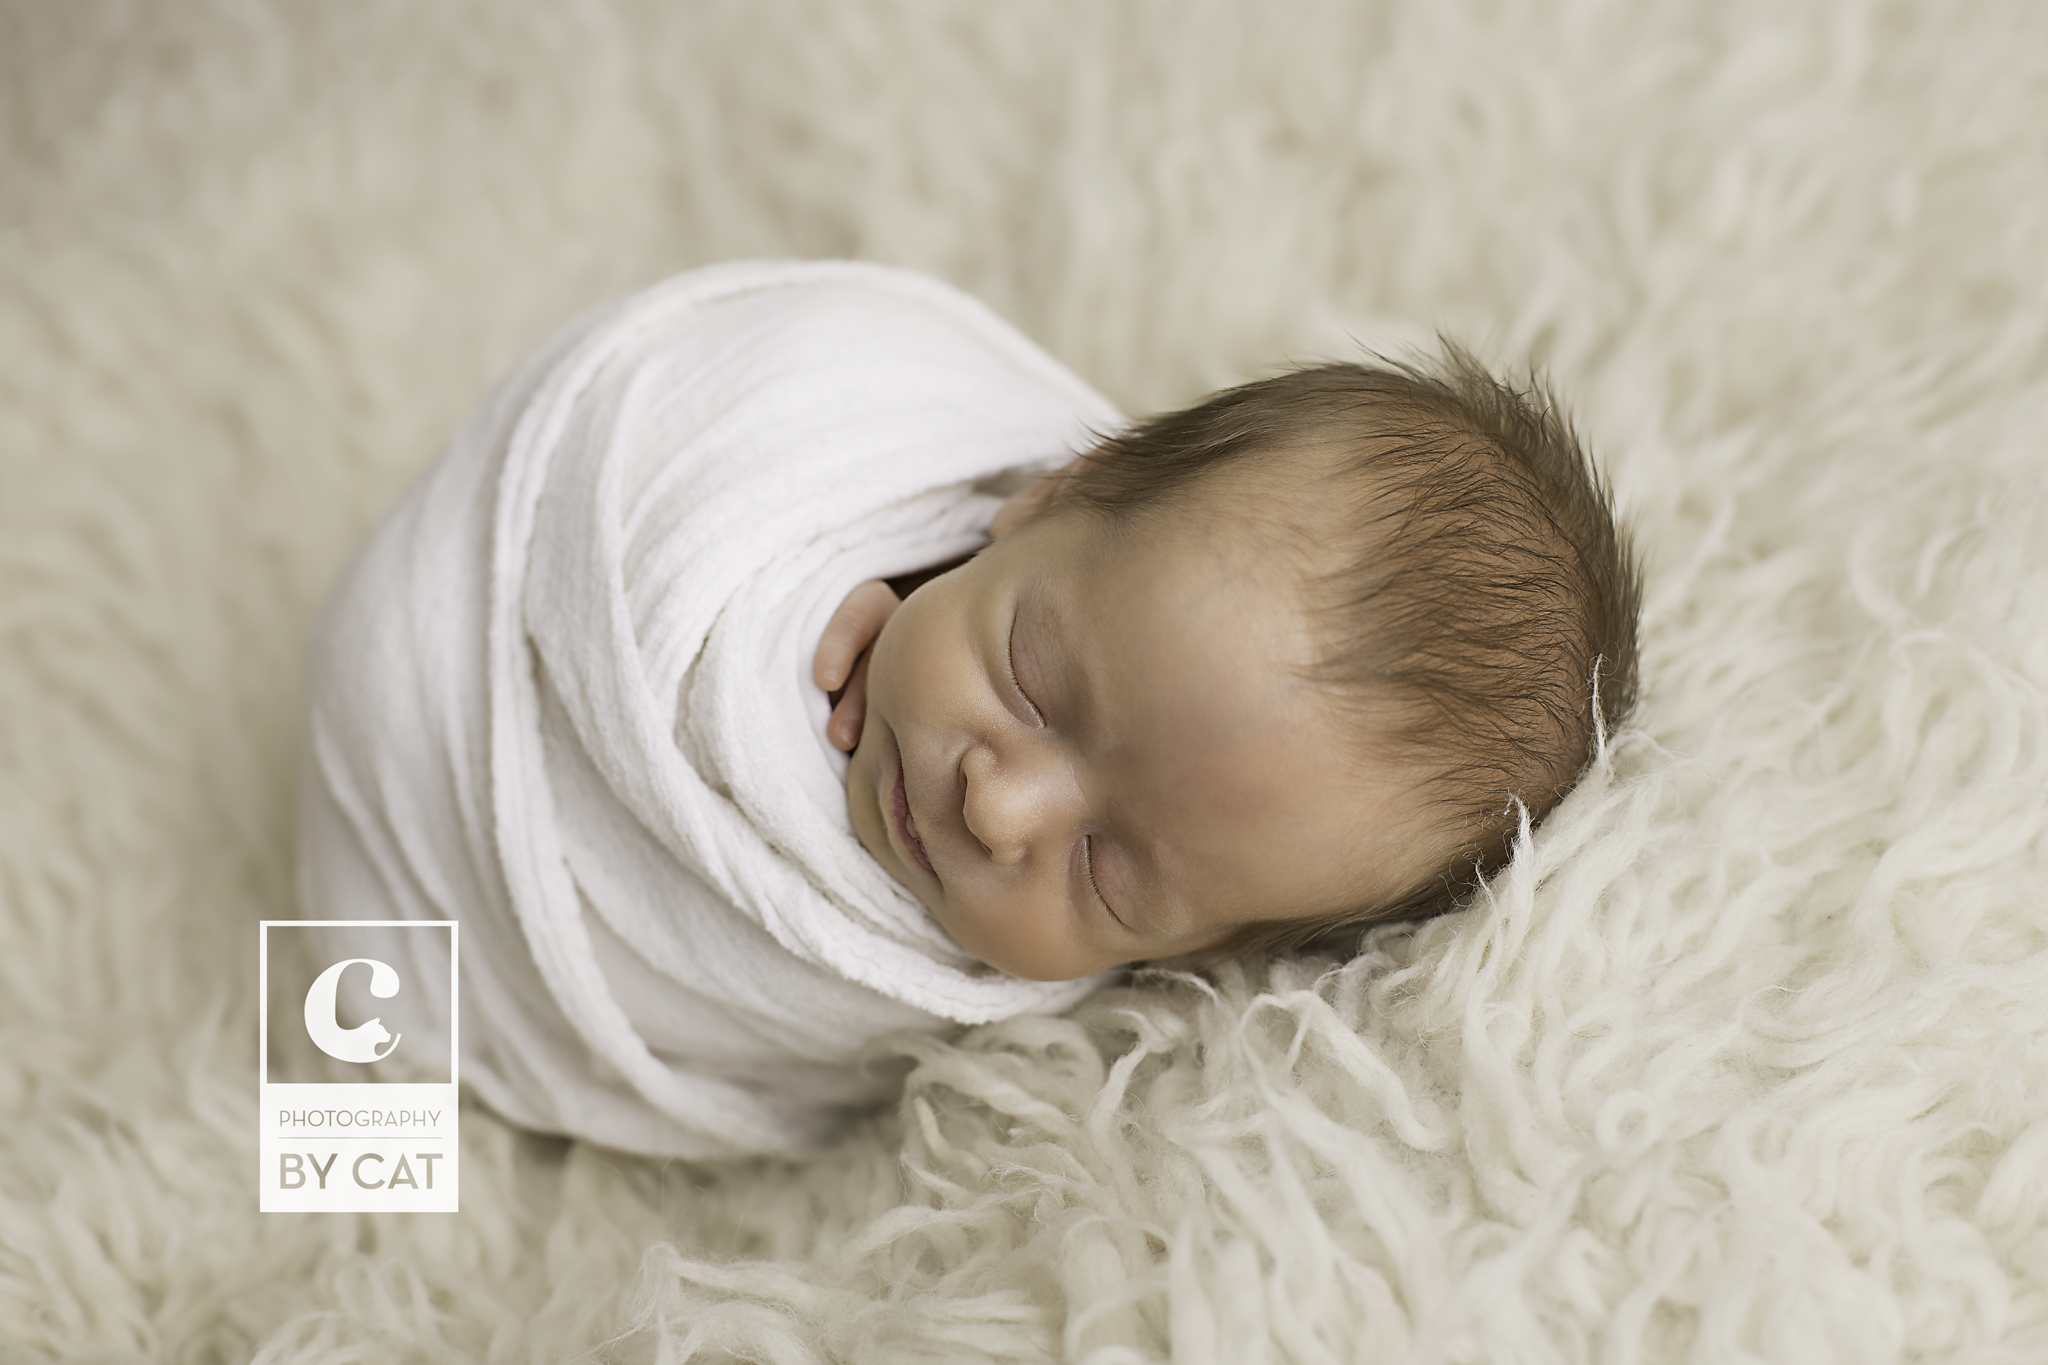 Farmingtonhills, Michigan Newborn Photographer